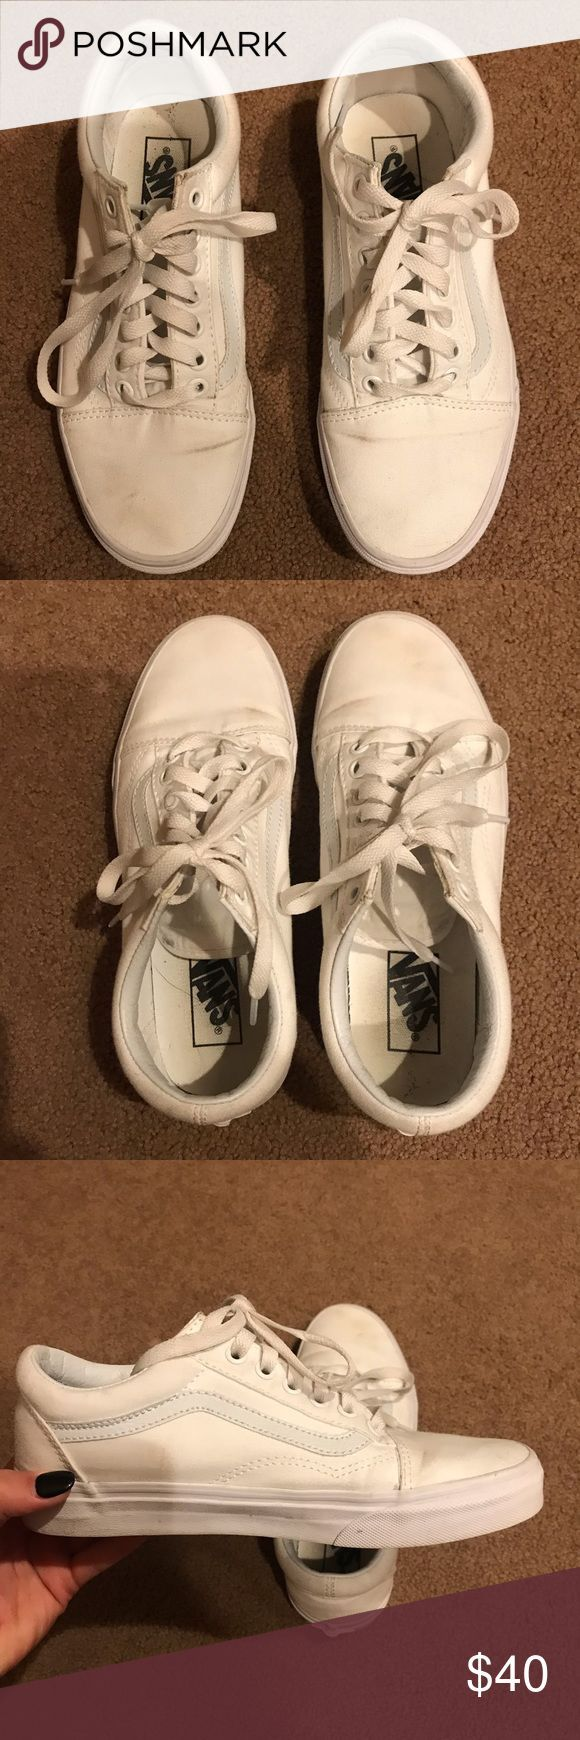 All white old school vans Only worn a couple times have small marks on the fron All white old school vans Only worn a couple times have small marks on the fron